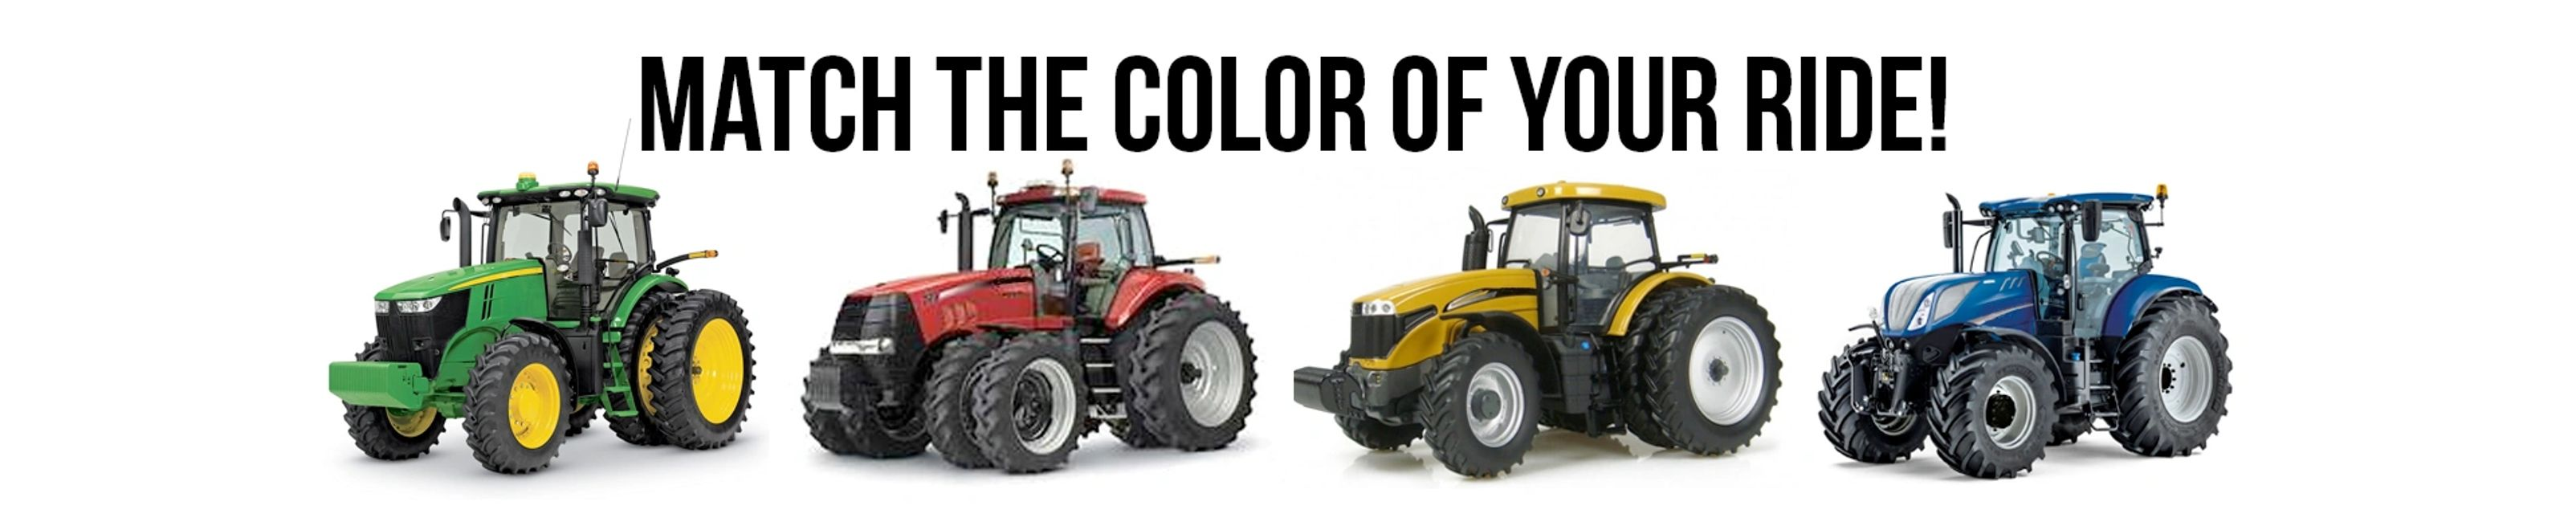 Match the color of your ride, land roller, land rollers, landrollers.com, Factory Direct, color,